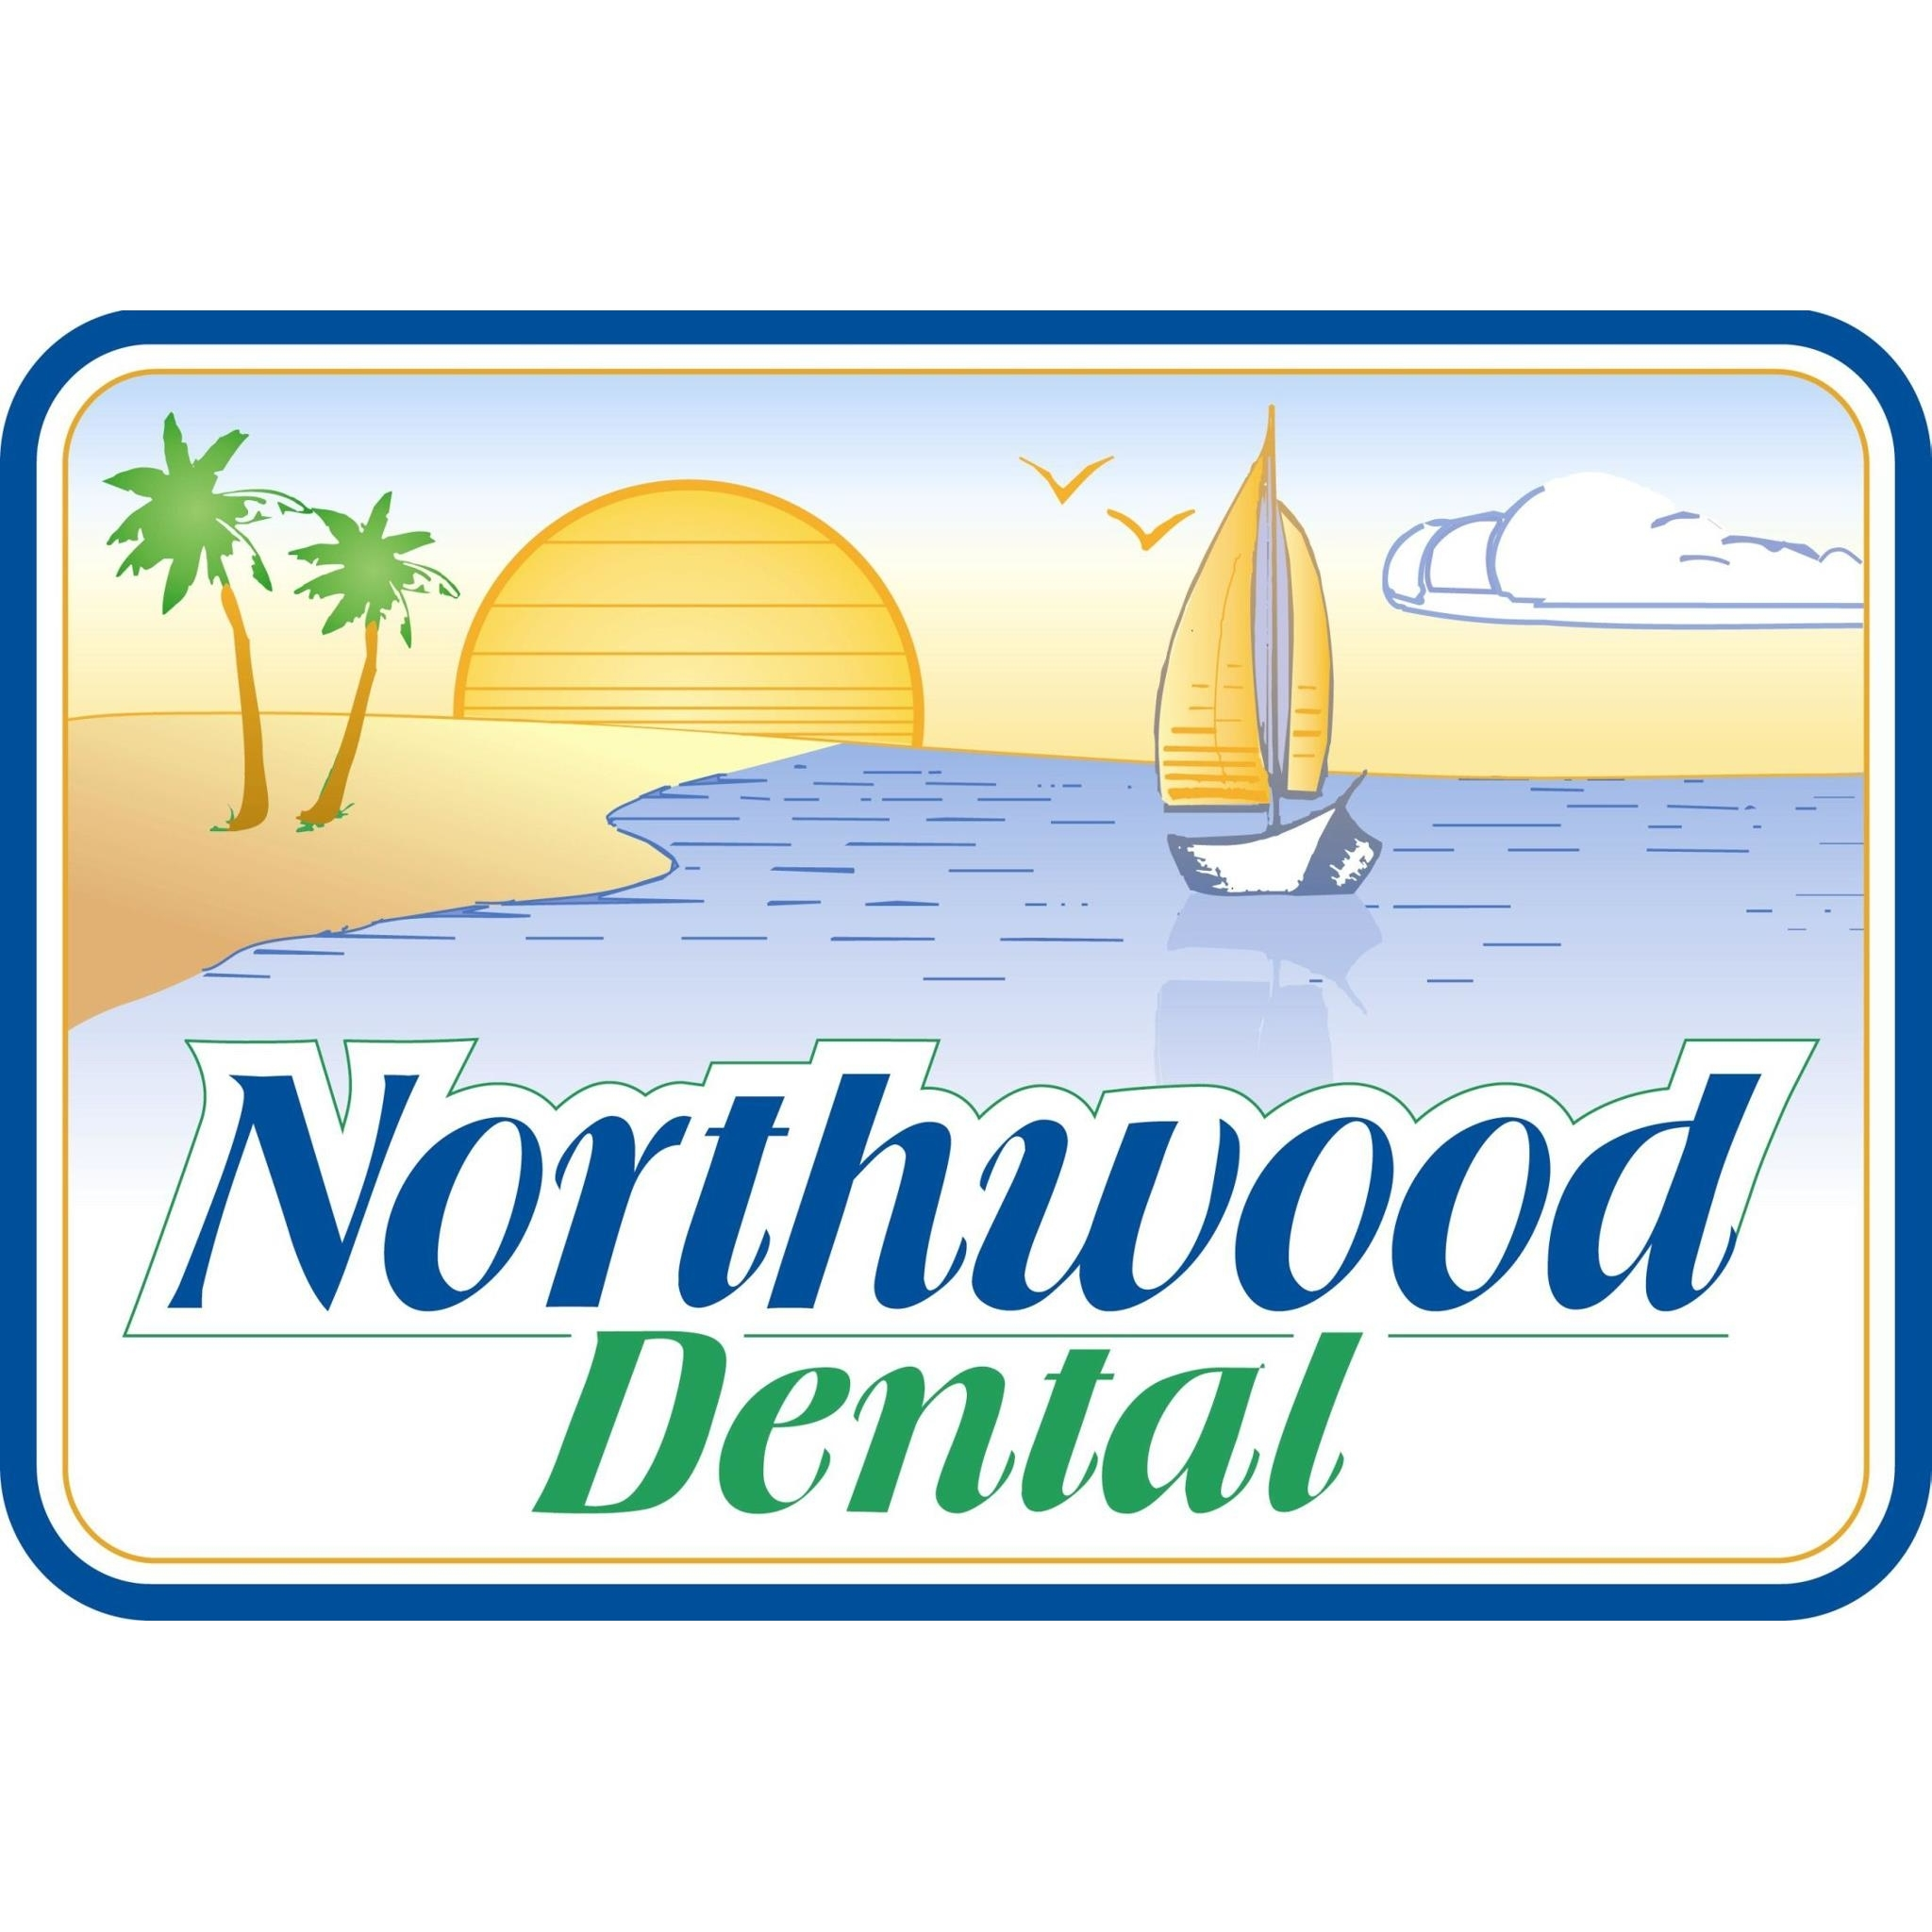 Northwood Dental - Clearwater, FL 33761 - (727) 797-5161 | ShowMeLocal.com